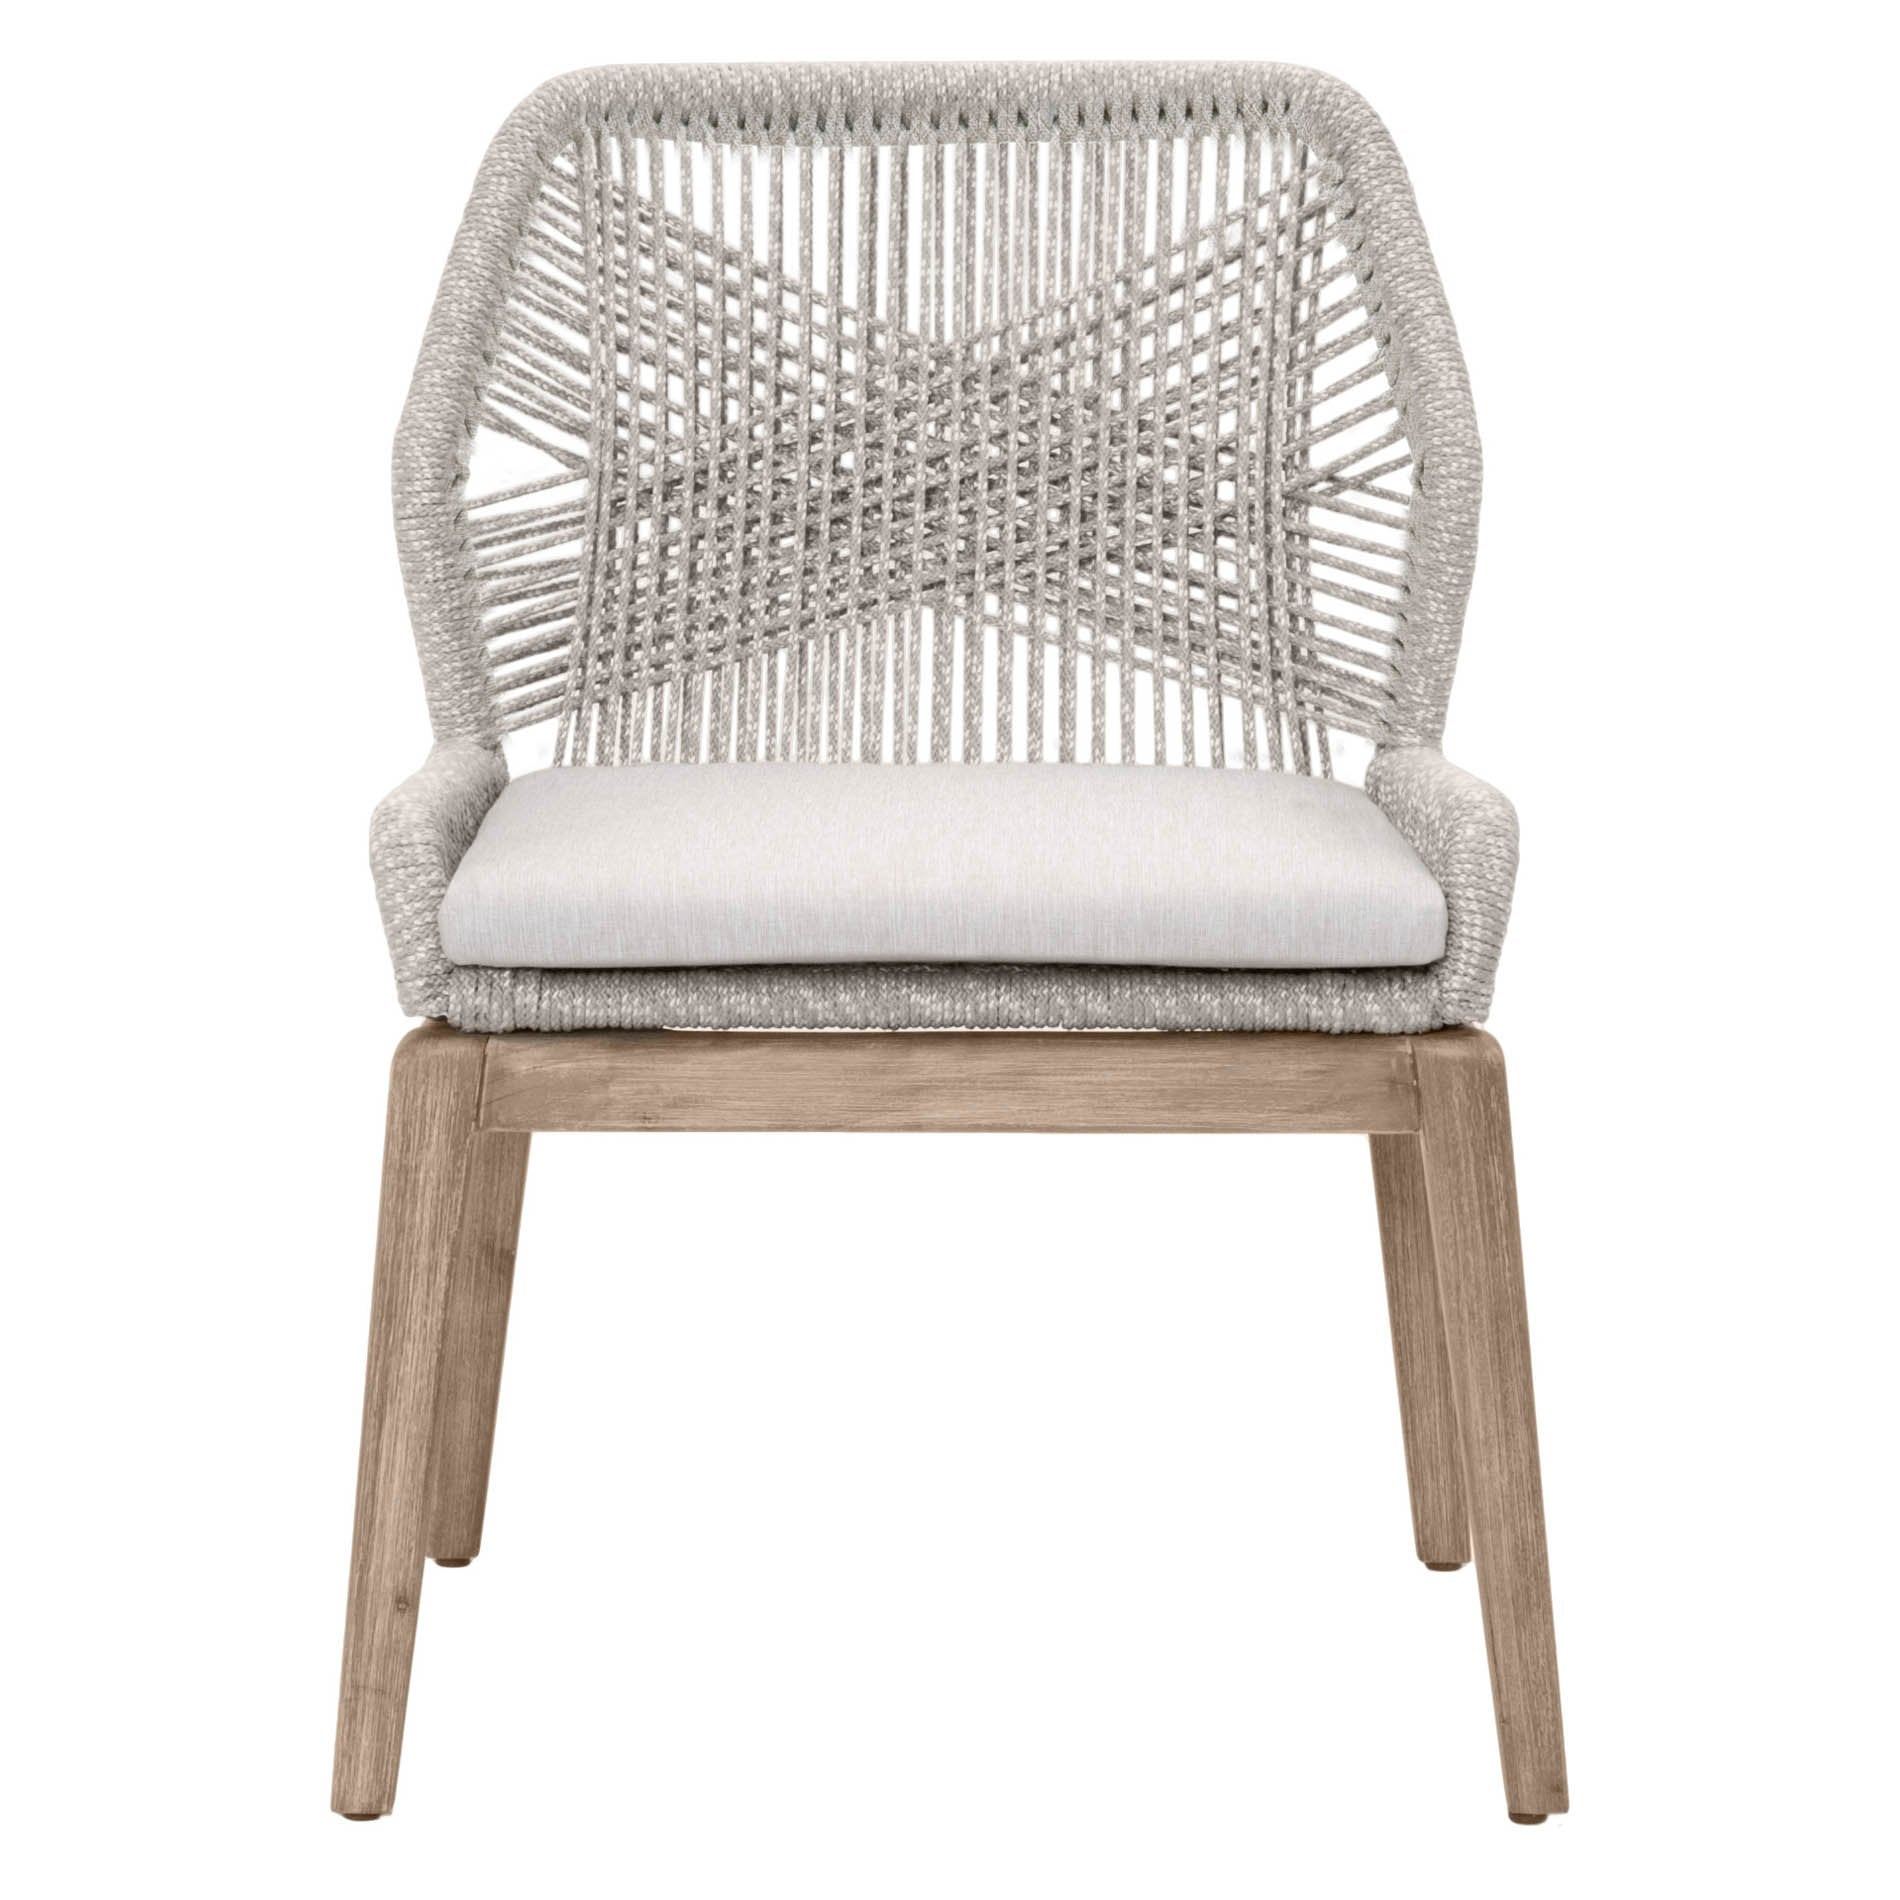 Loom Dining Chair (Set of 2) in Taupe & White Flat Rope